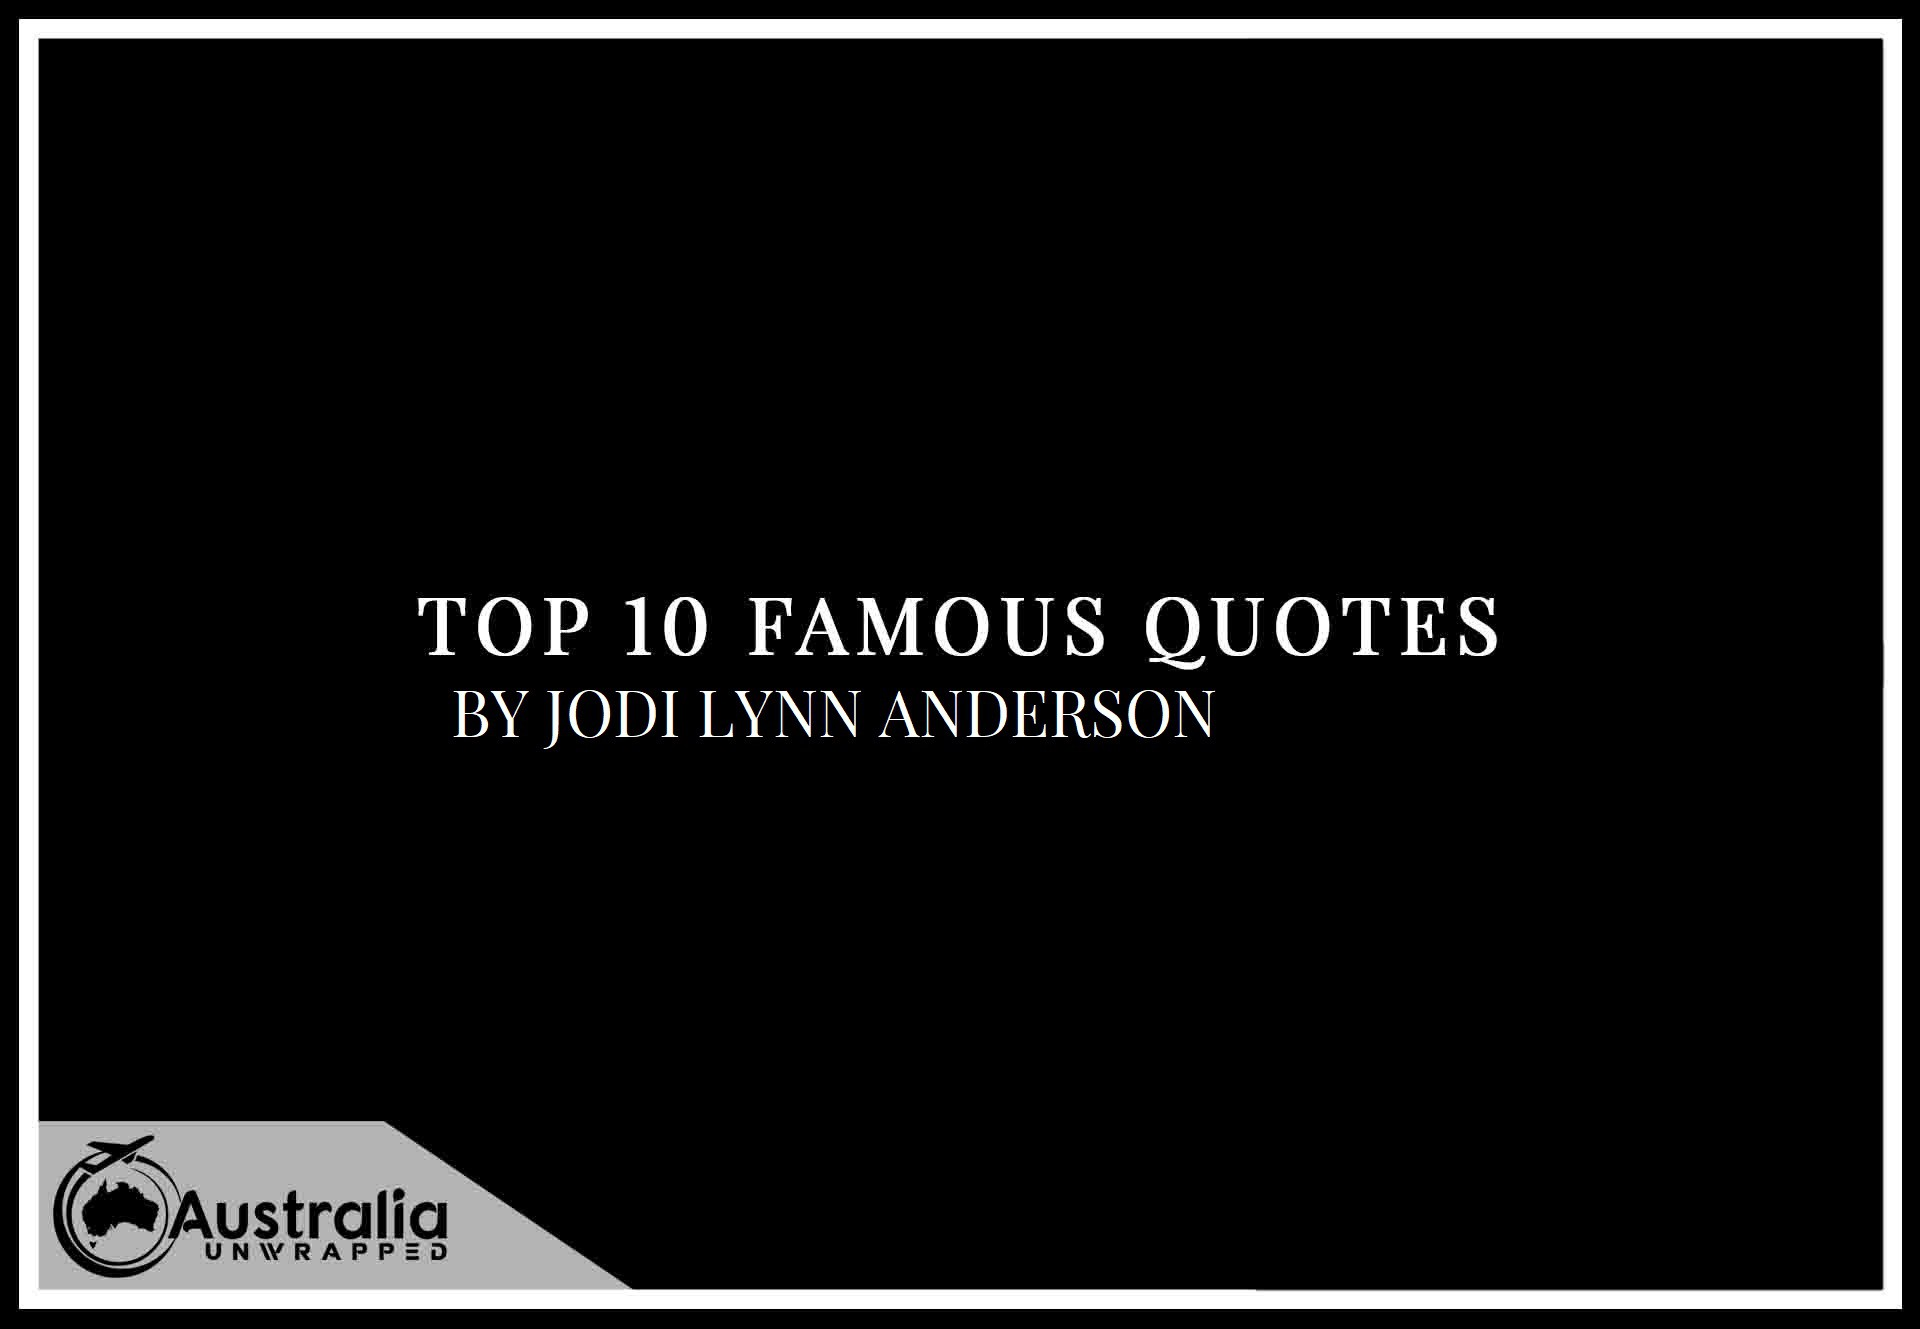 Top 10 Famous Quotes by Author Jodi Lynn Anderson